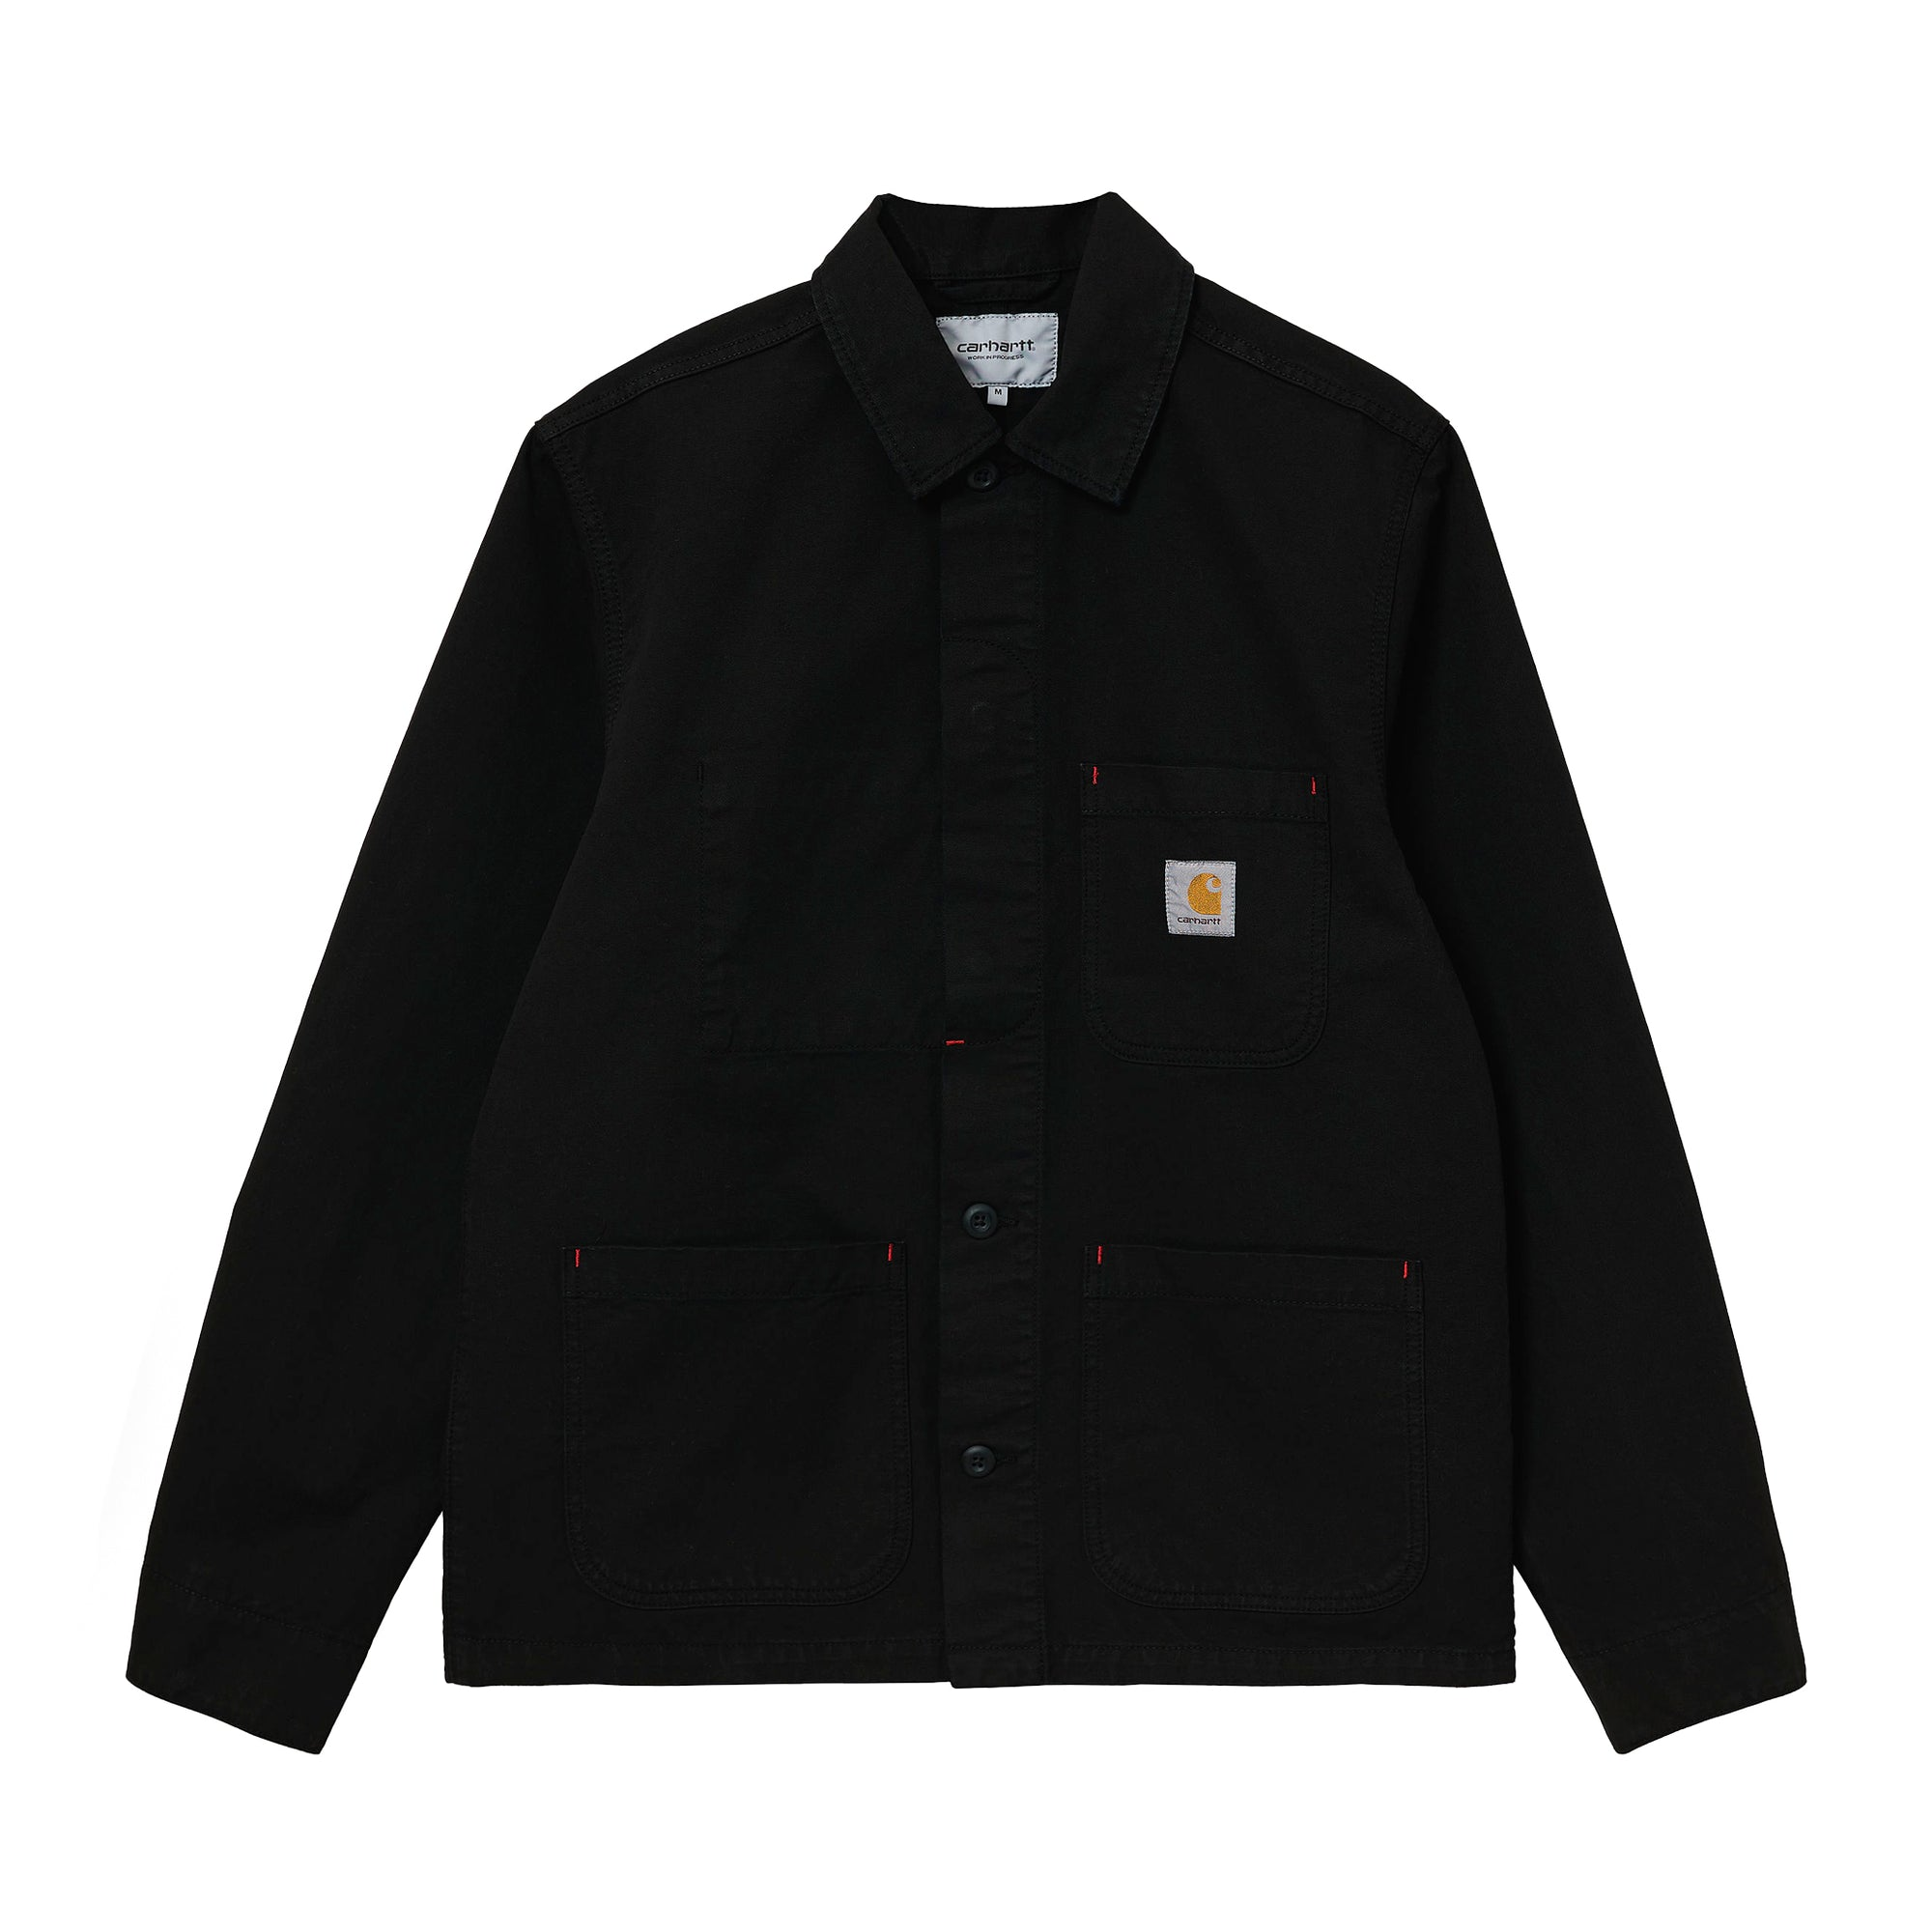 Carhartt WIP Wesley Jacket: Black - The Union Project